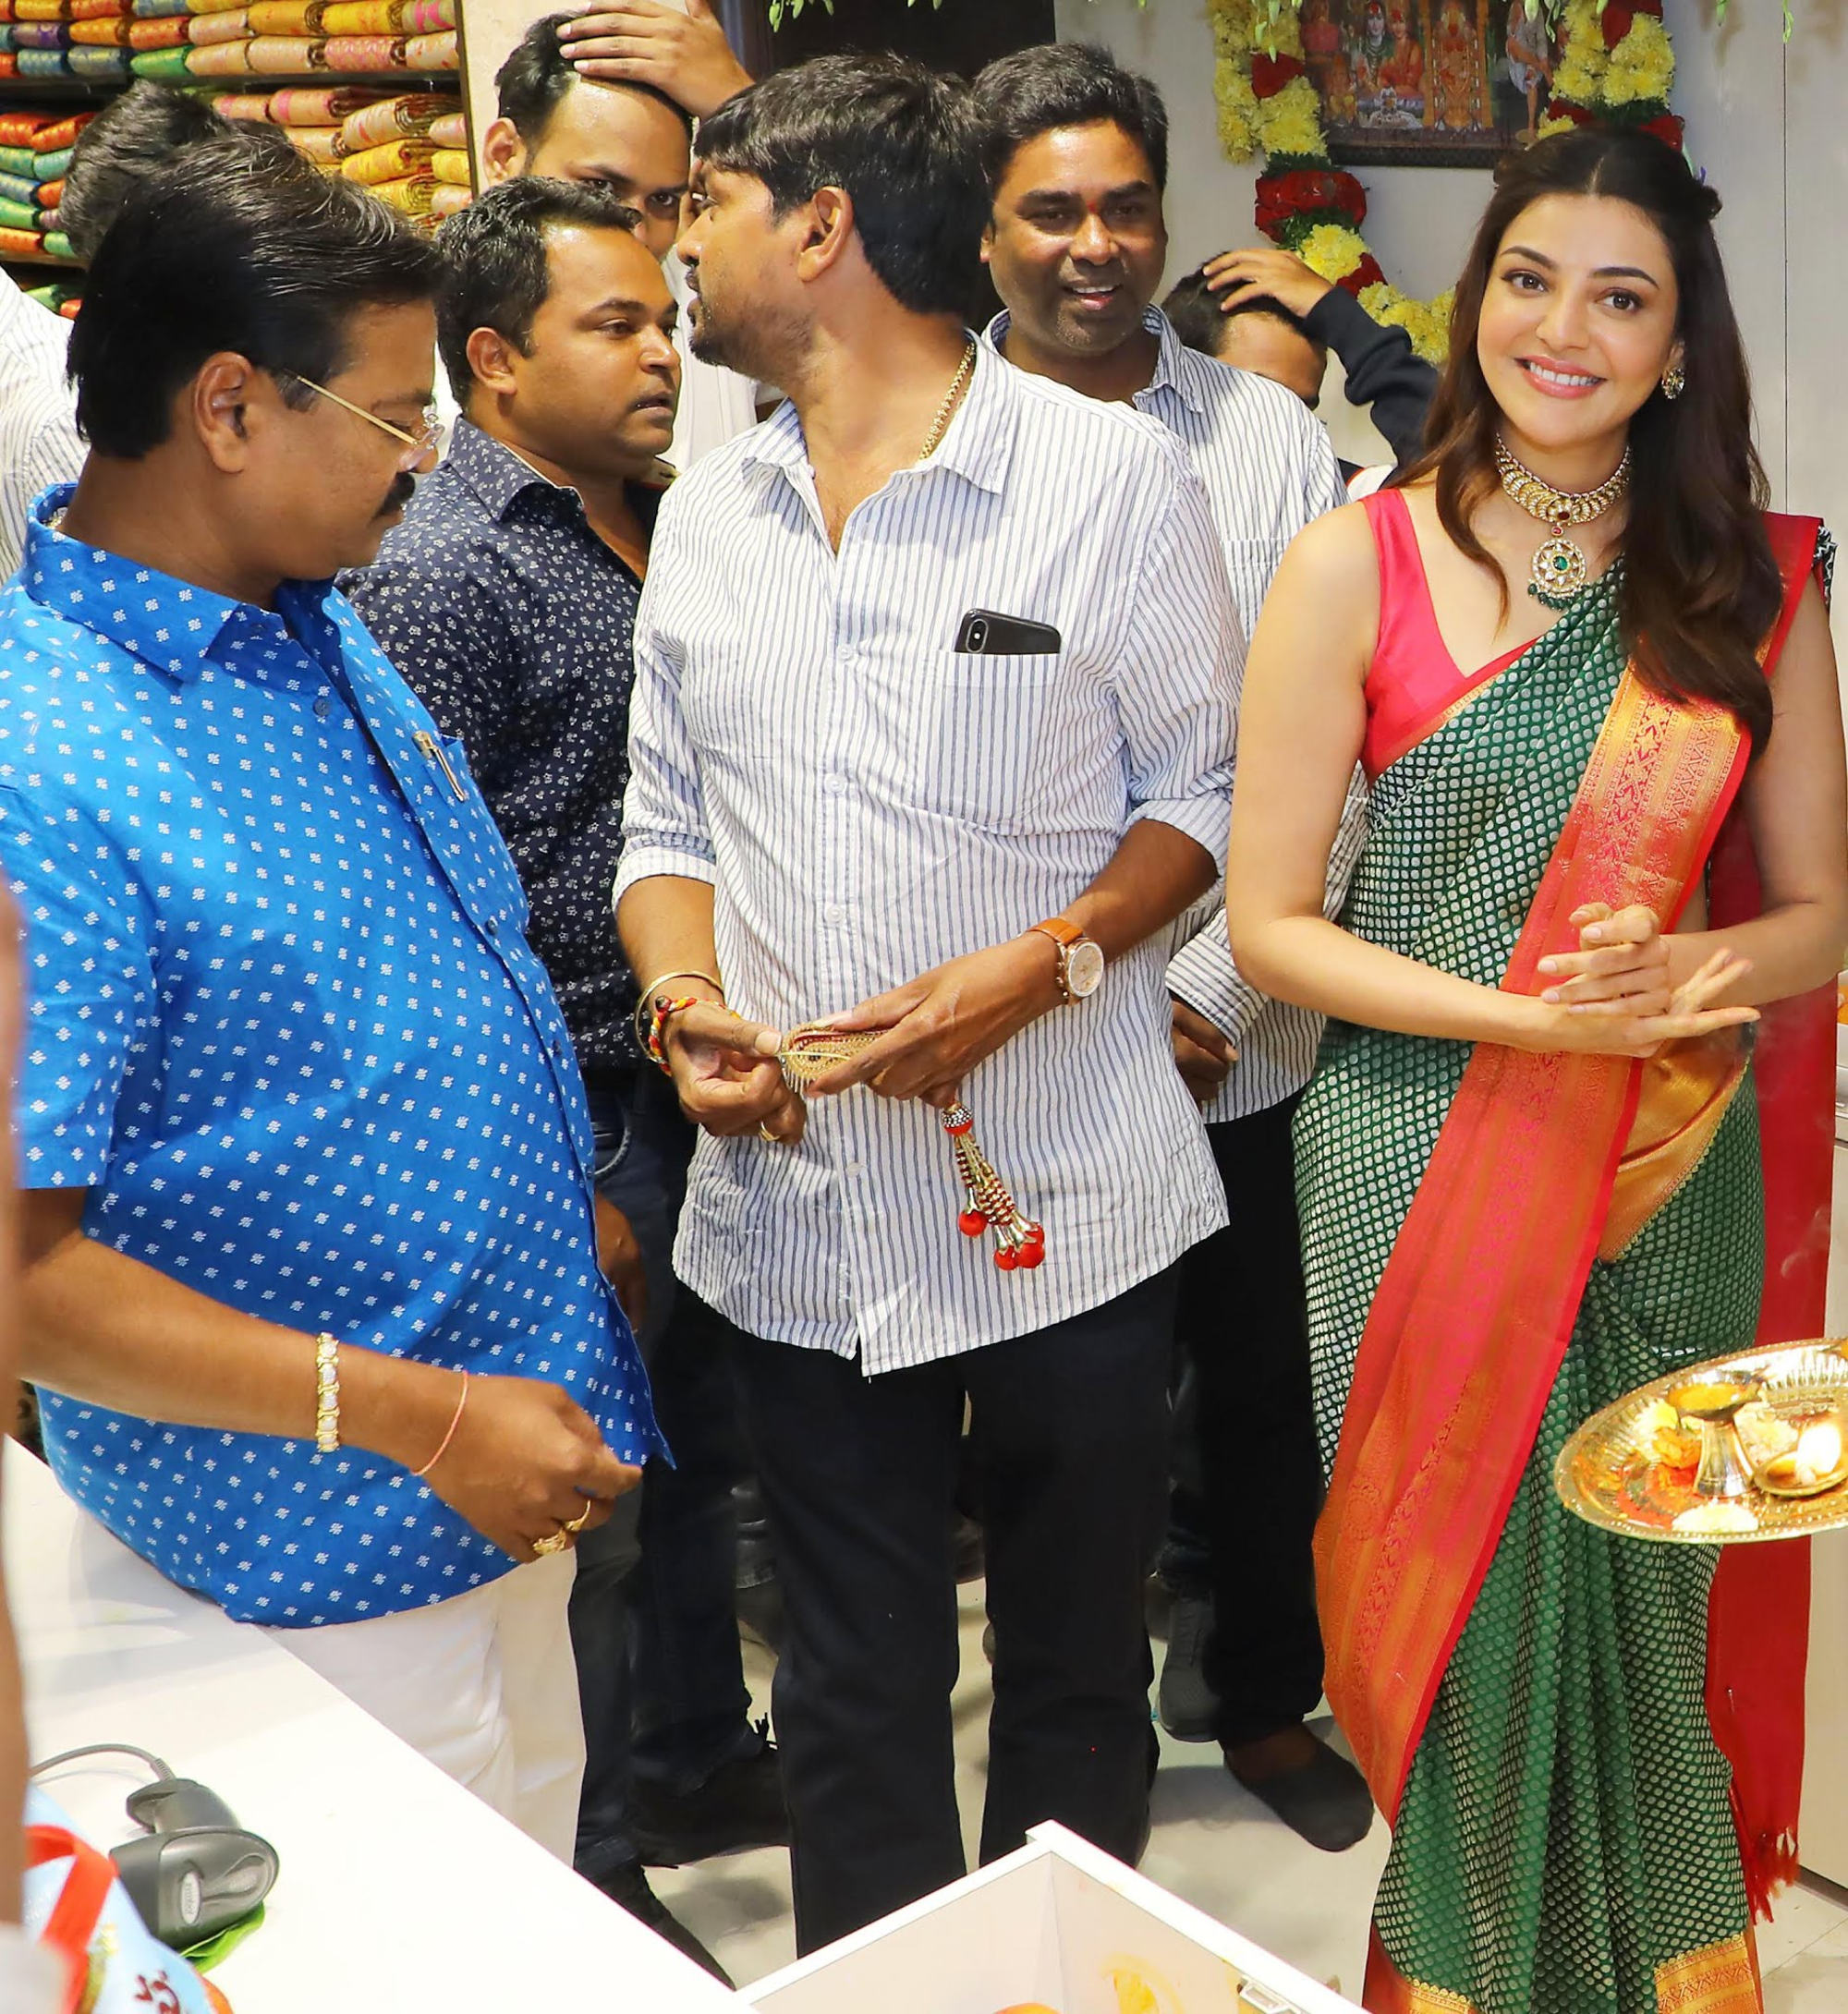 Star Actress Kajal Agarwal, at the inauguration of the 5th Maangalya Shopping Mall in Hyderabad at Chintal, today, as Mr Kasam Namashivaya (extreme left), Chairman, Maangalya Shopping Mall; looks on.